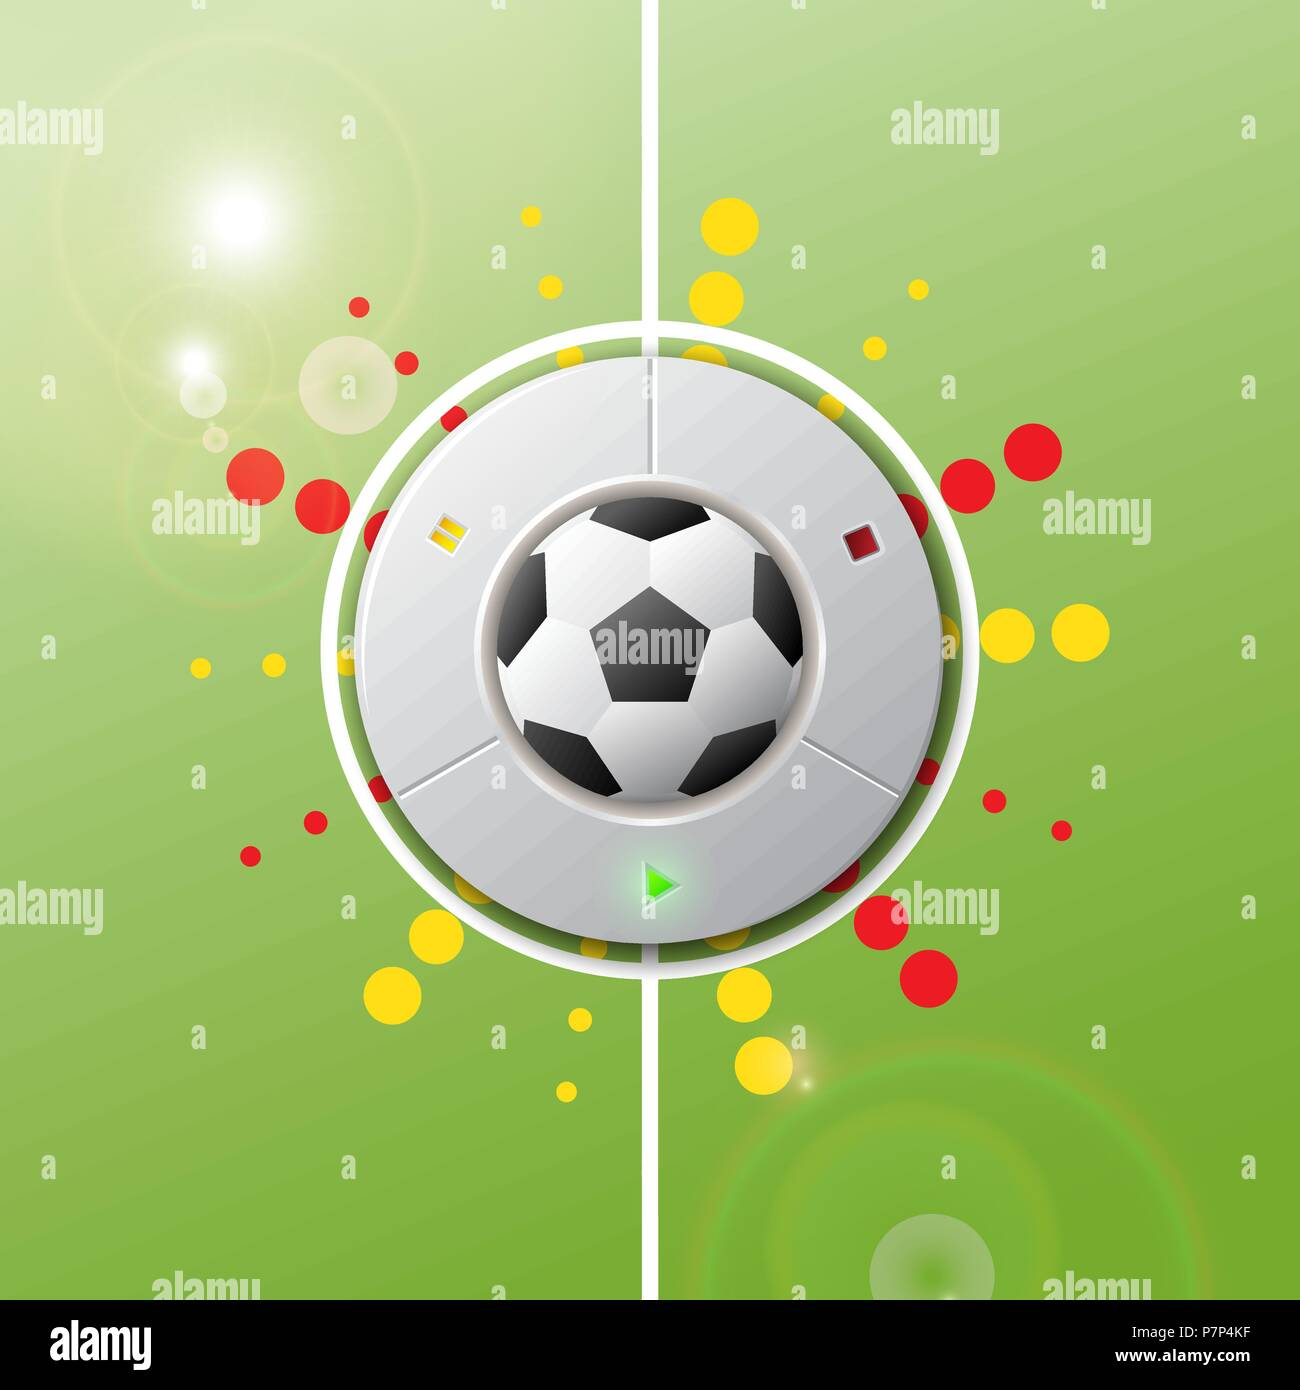 Realistic football button to play game match on green field. Vector illustration signs for the soccer championship, games. - Stock Vector